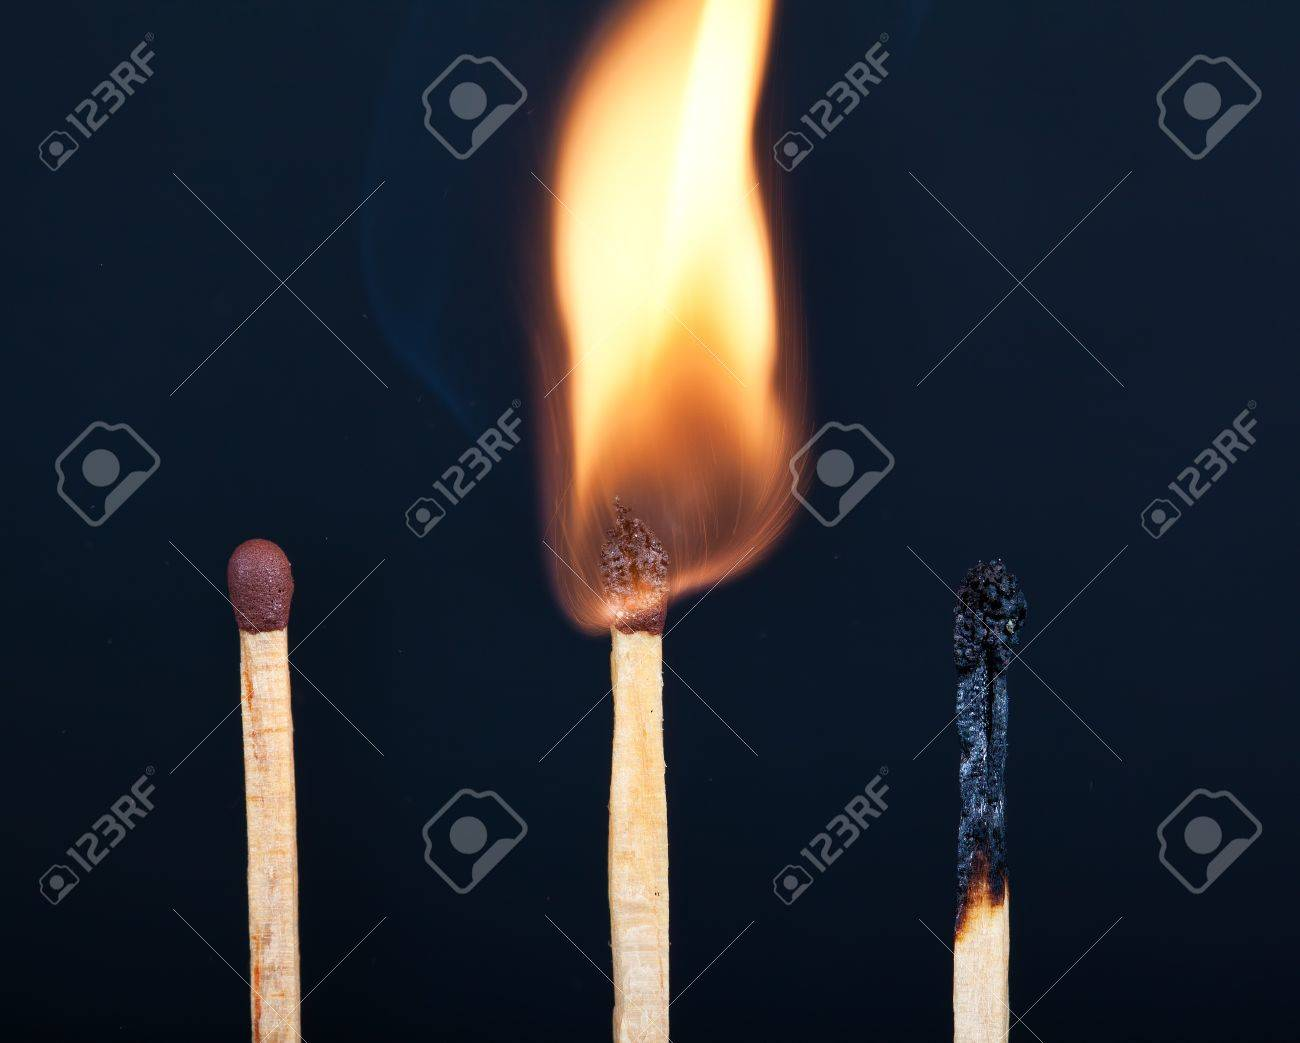 Tree matches in different stages of burning against a black background Stock Photo - 13644896